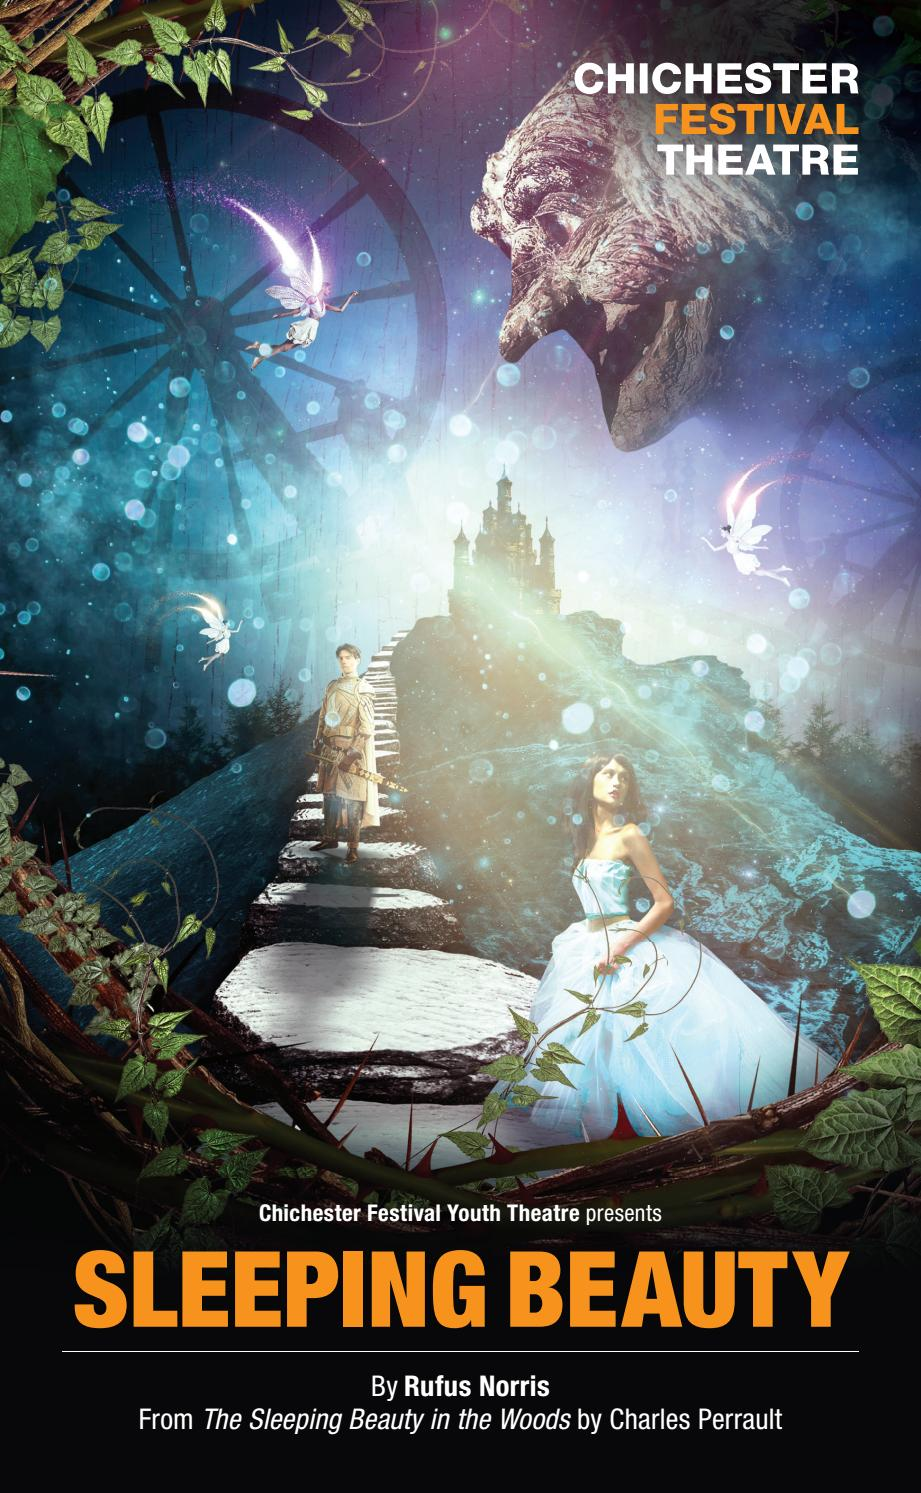 Sleeping Beauty Digital Programme by Chichester Festival